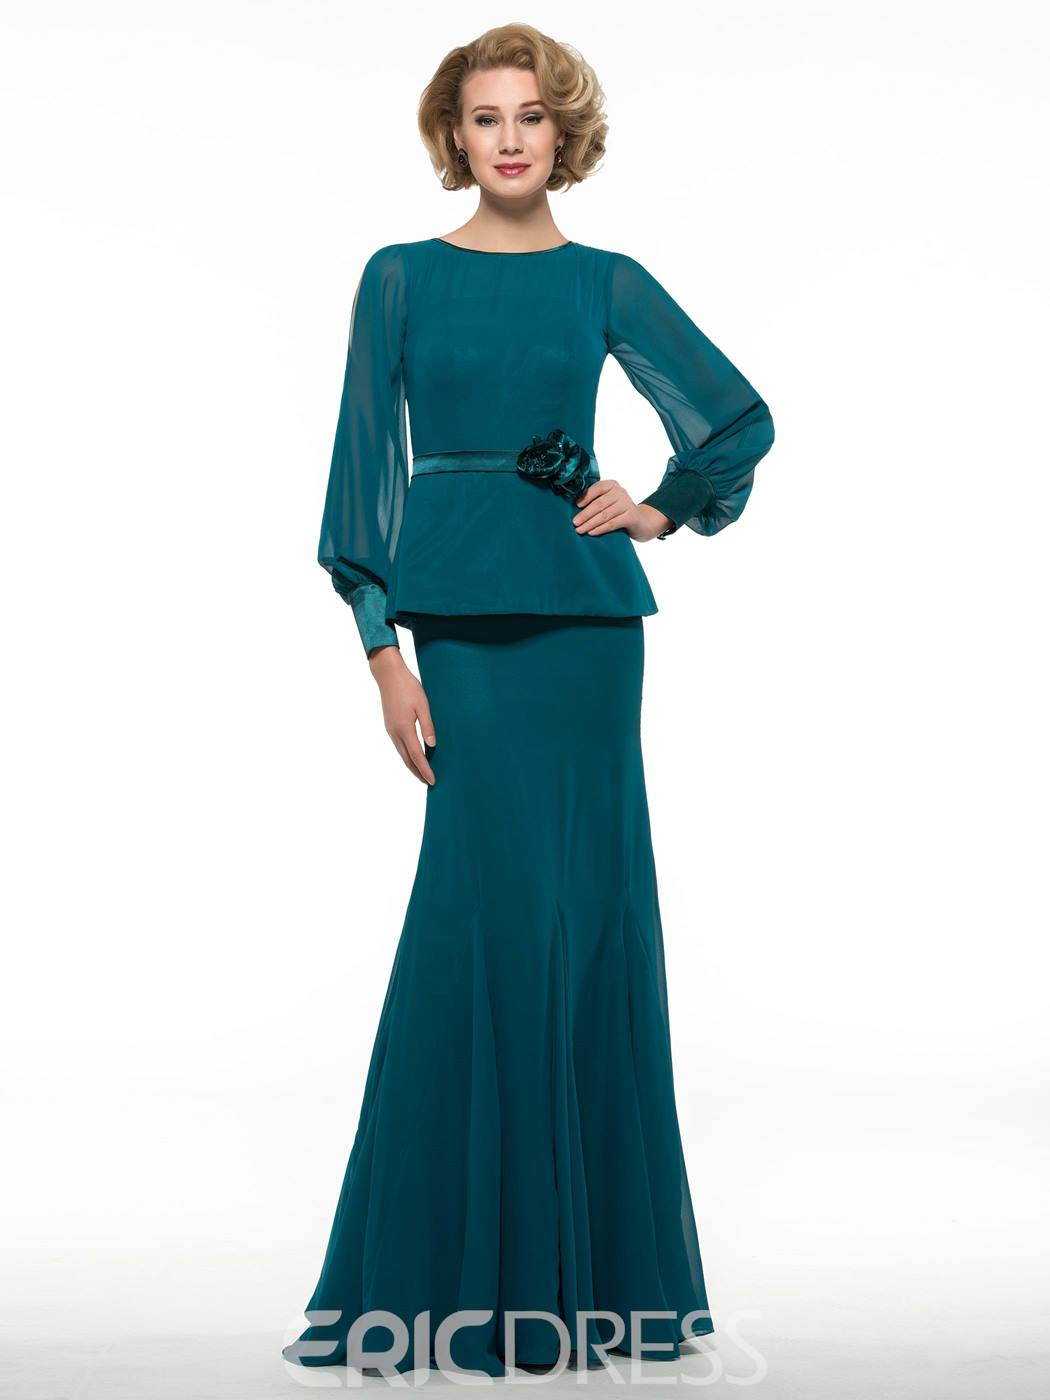 Ericdress Elegant Long Sleeves Mother Of The Bride Dress